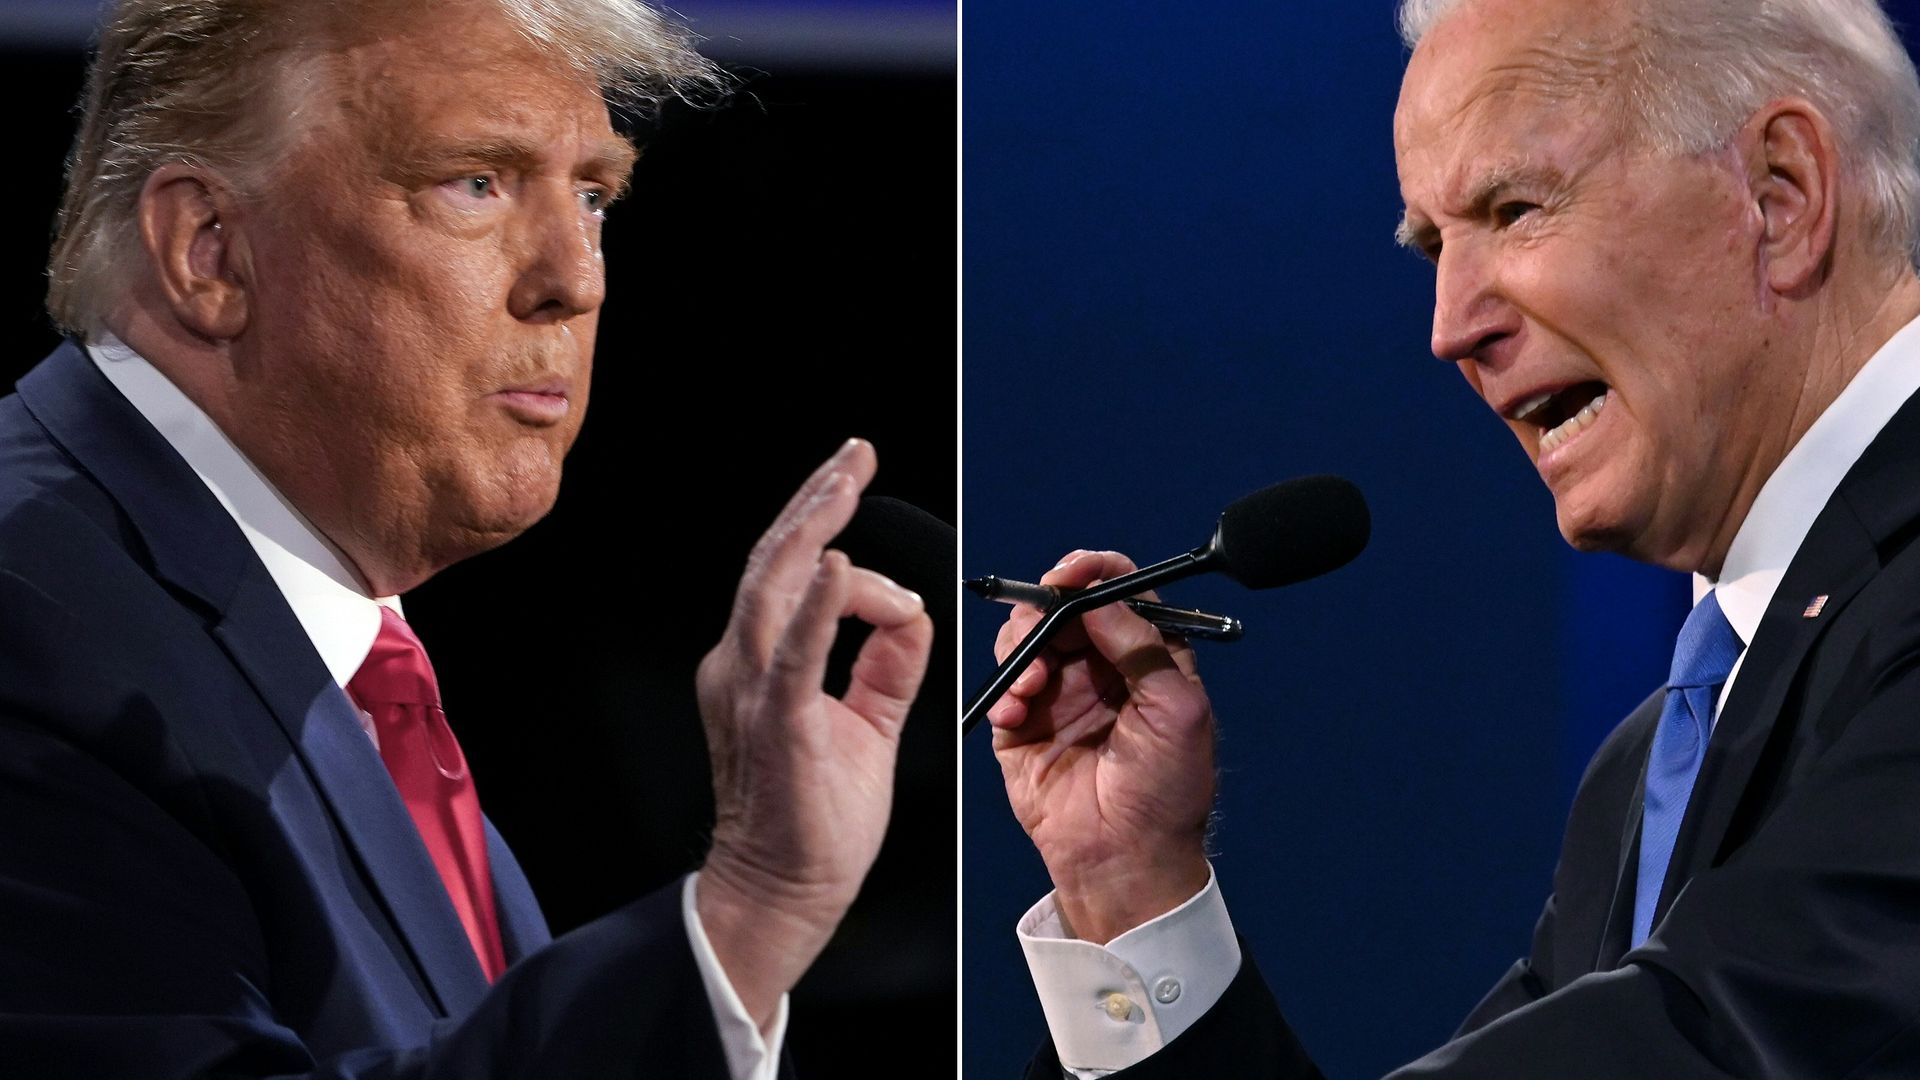 US president Donald Trump (L) and president-elect Joe Biden during the final presidential debate at Belmont University in Nashville, Tennessee - Credit: AFP via Getty Images